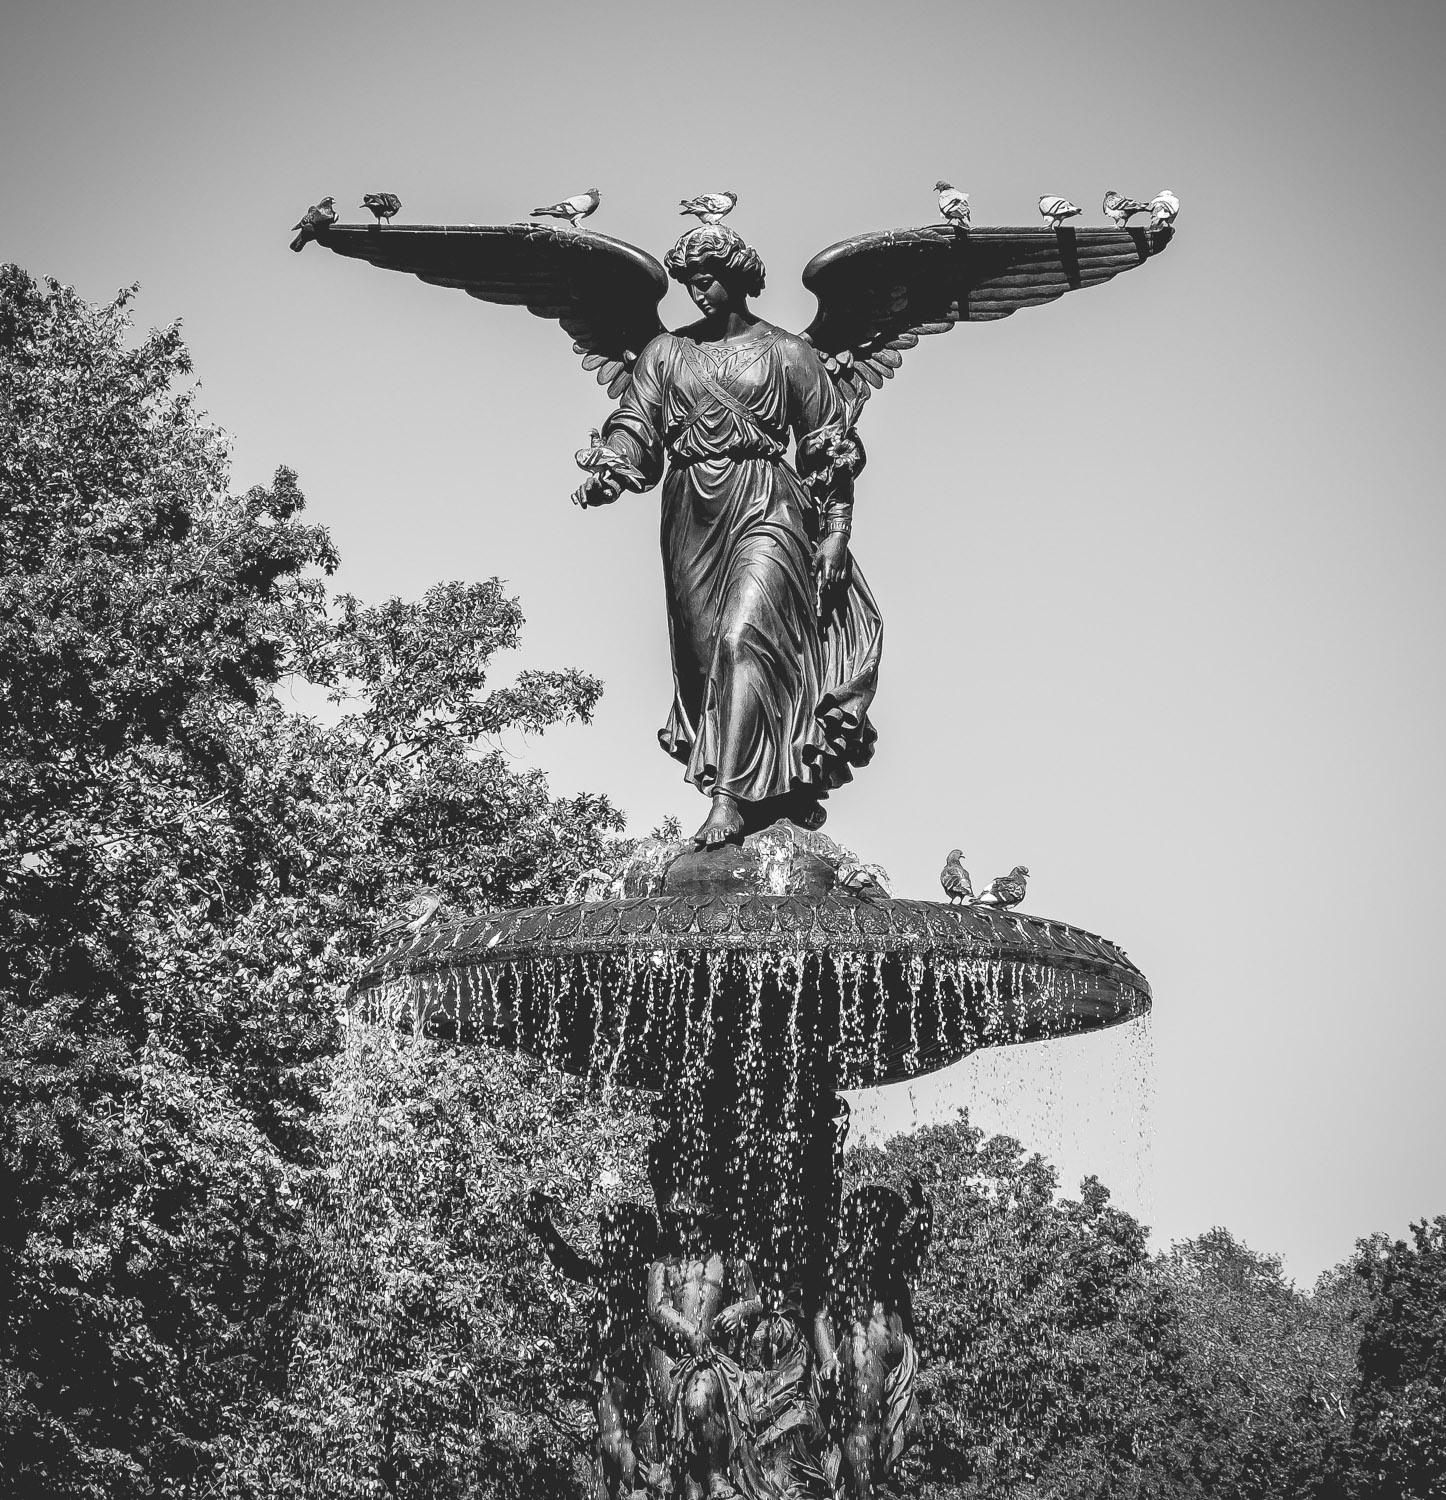 Bethesda Fountain with the Angel of Waters statue